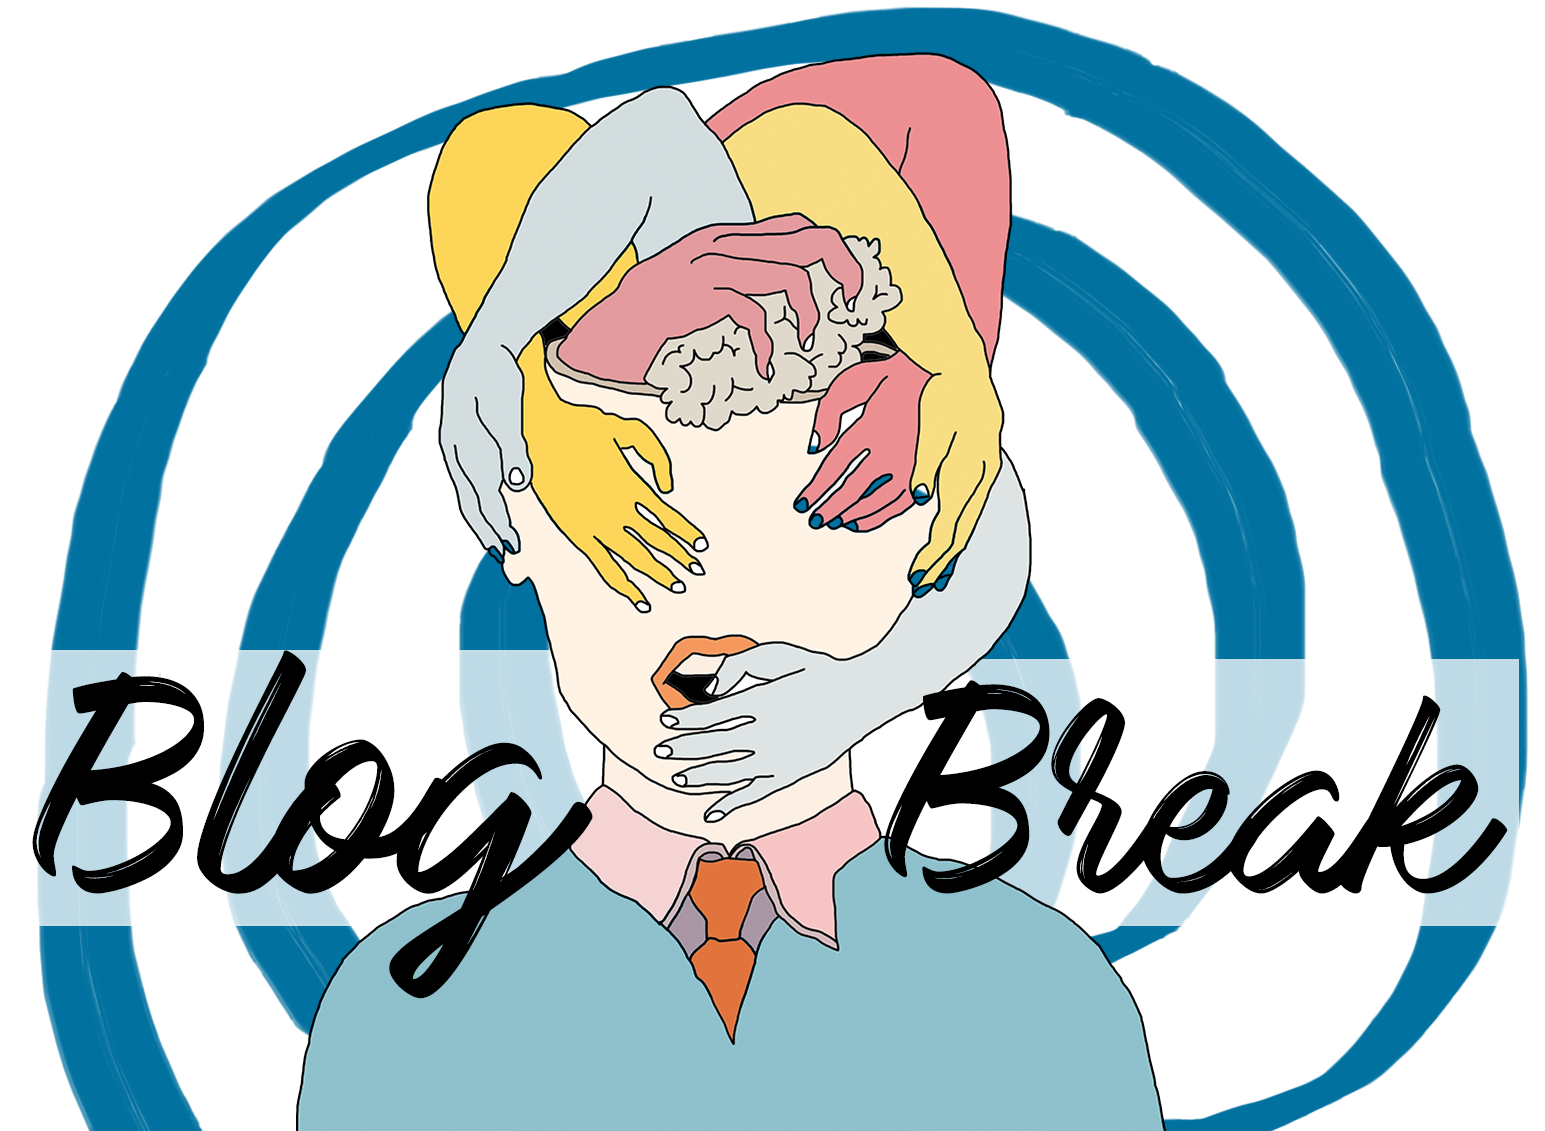 How to: Know when to take a blog break